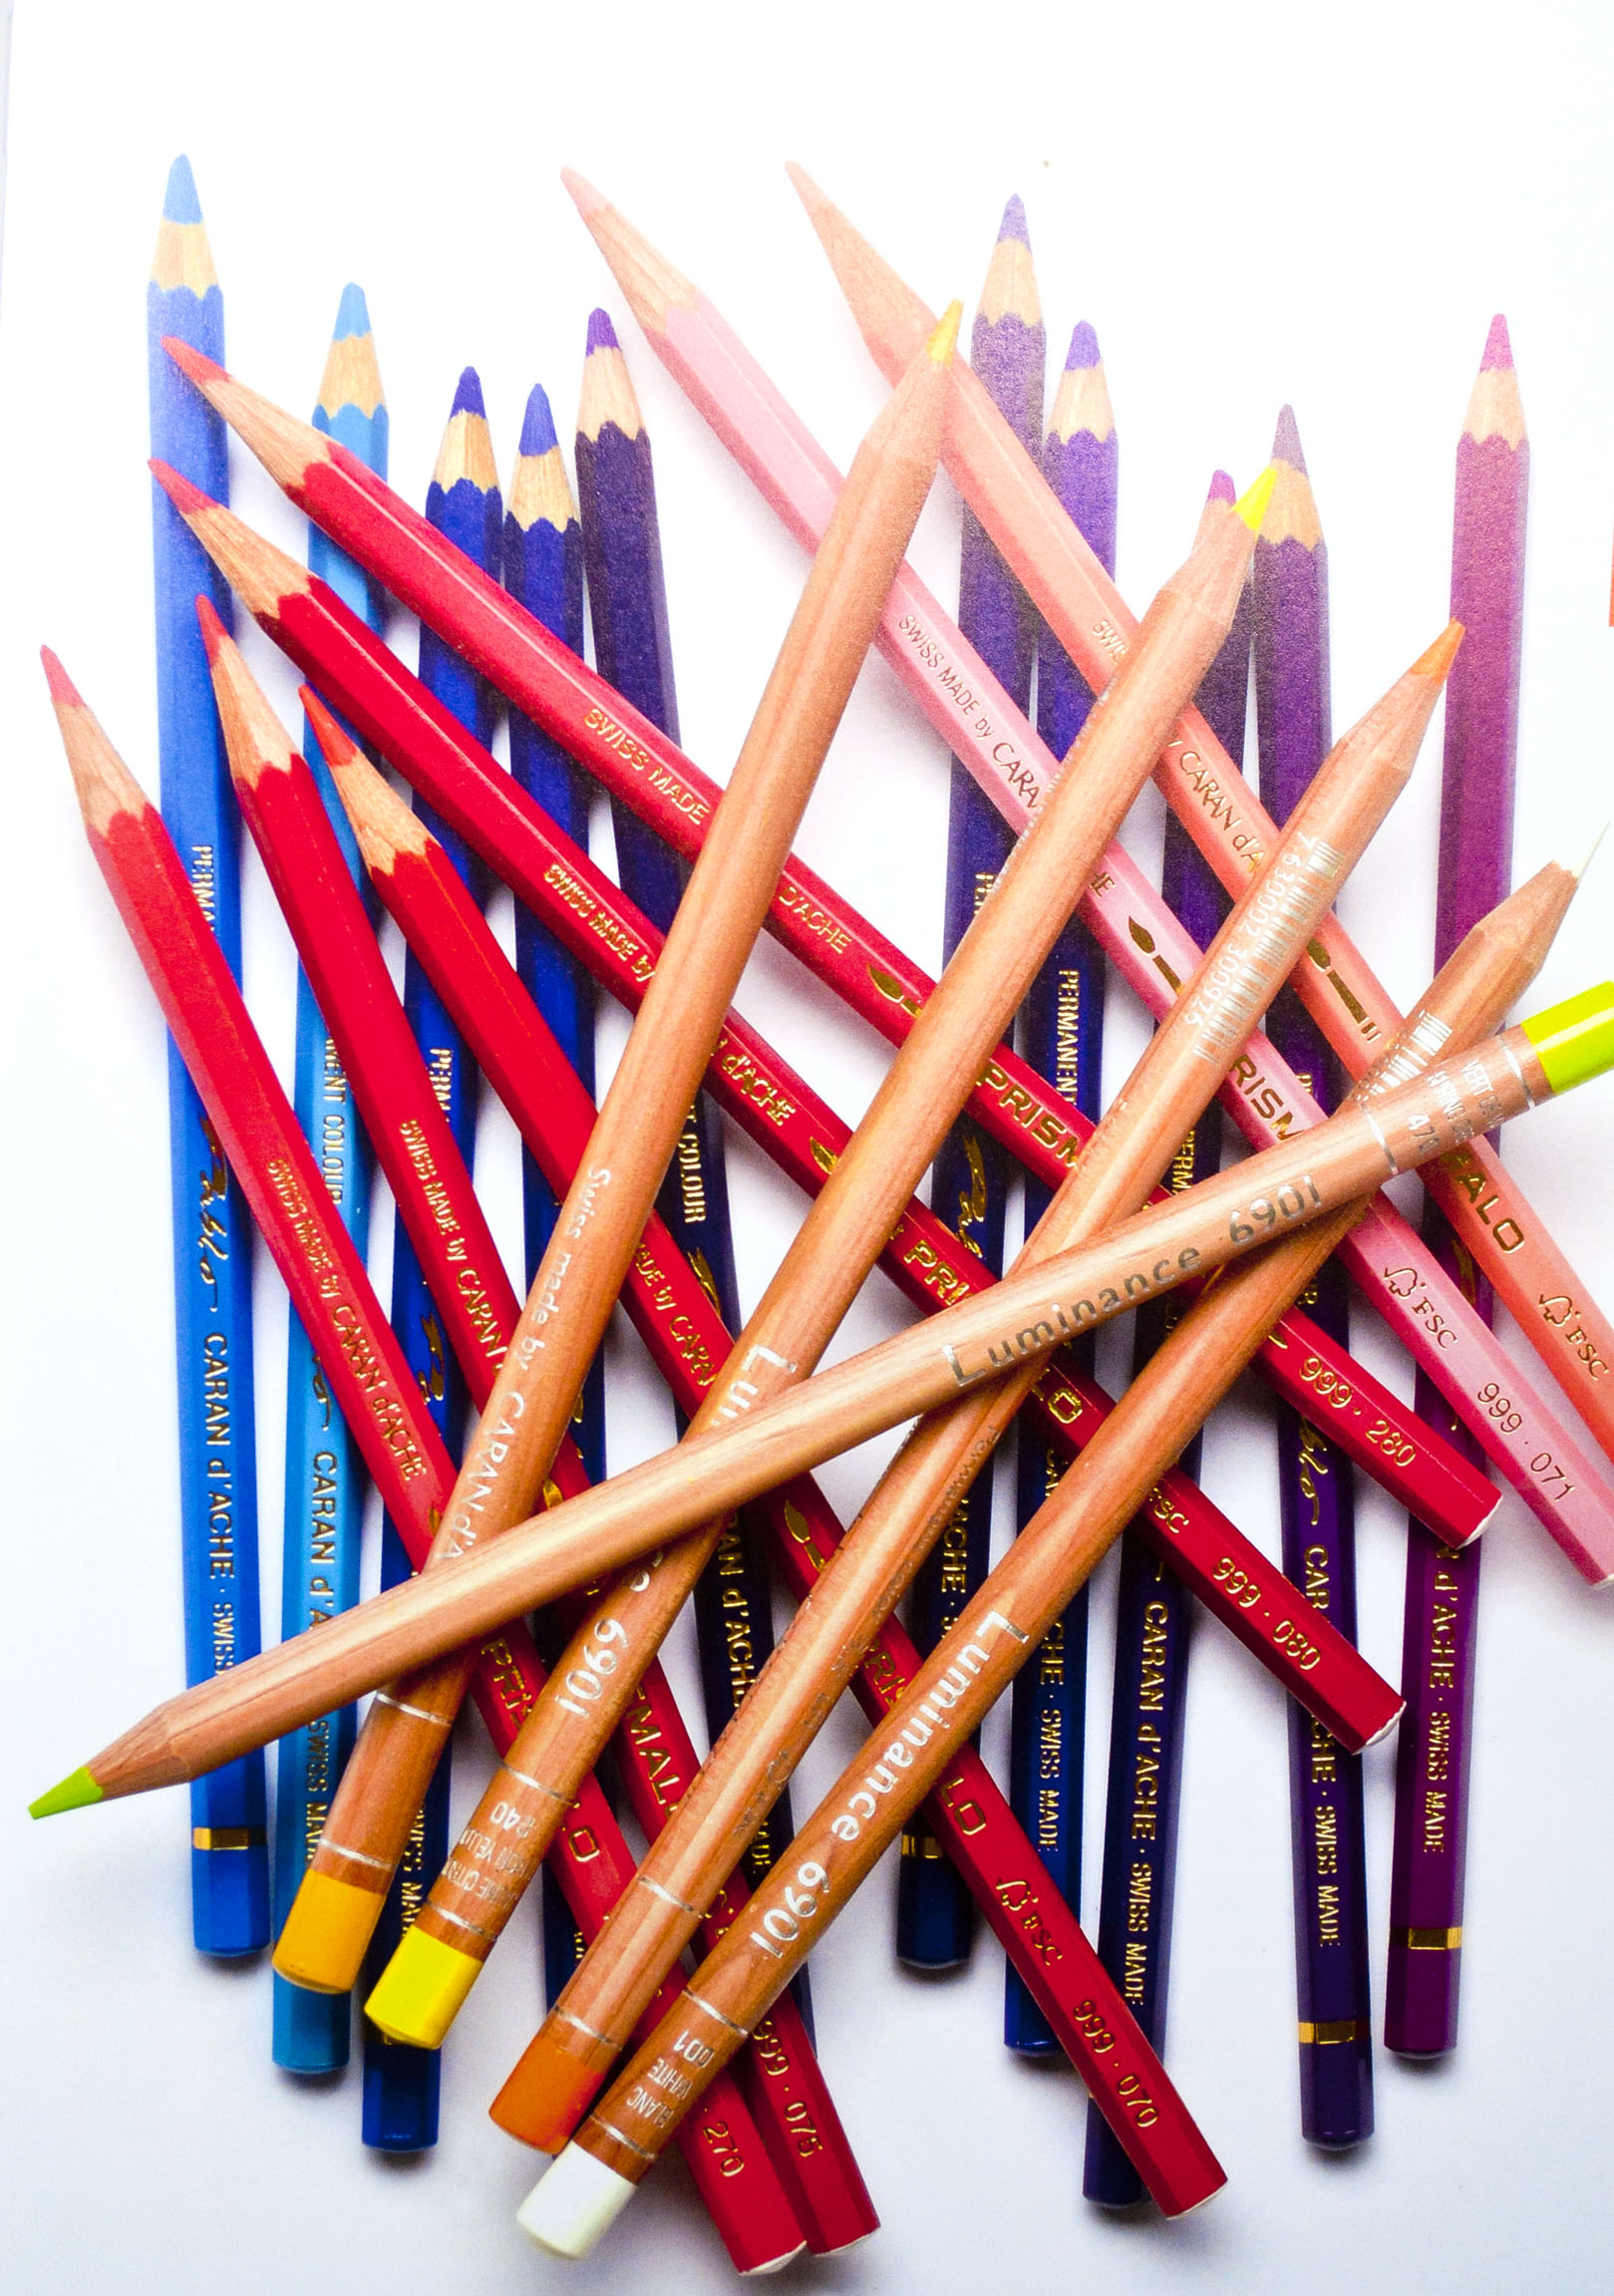 Workbook pencils image.jpg